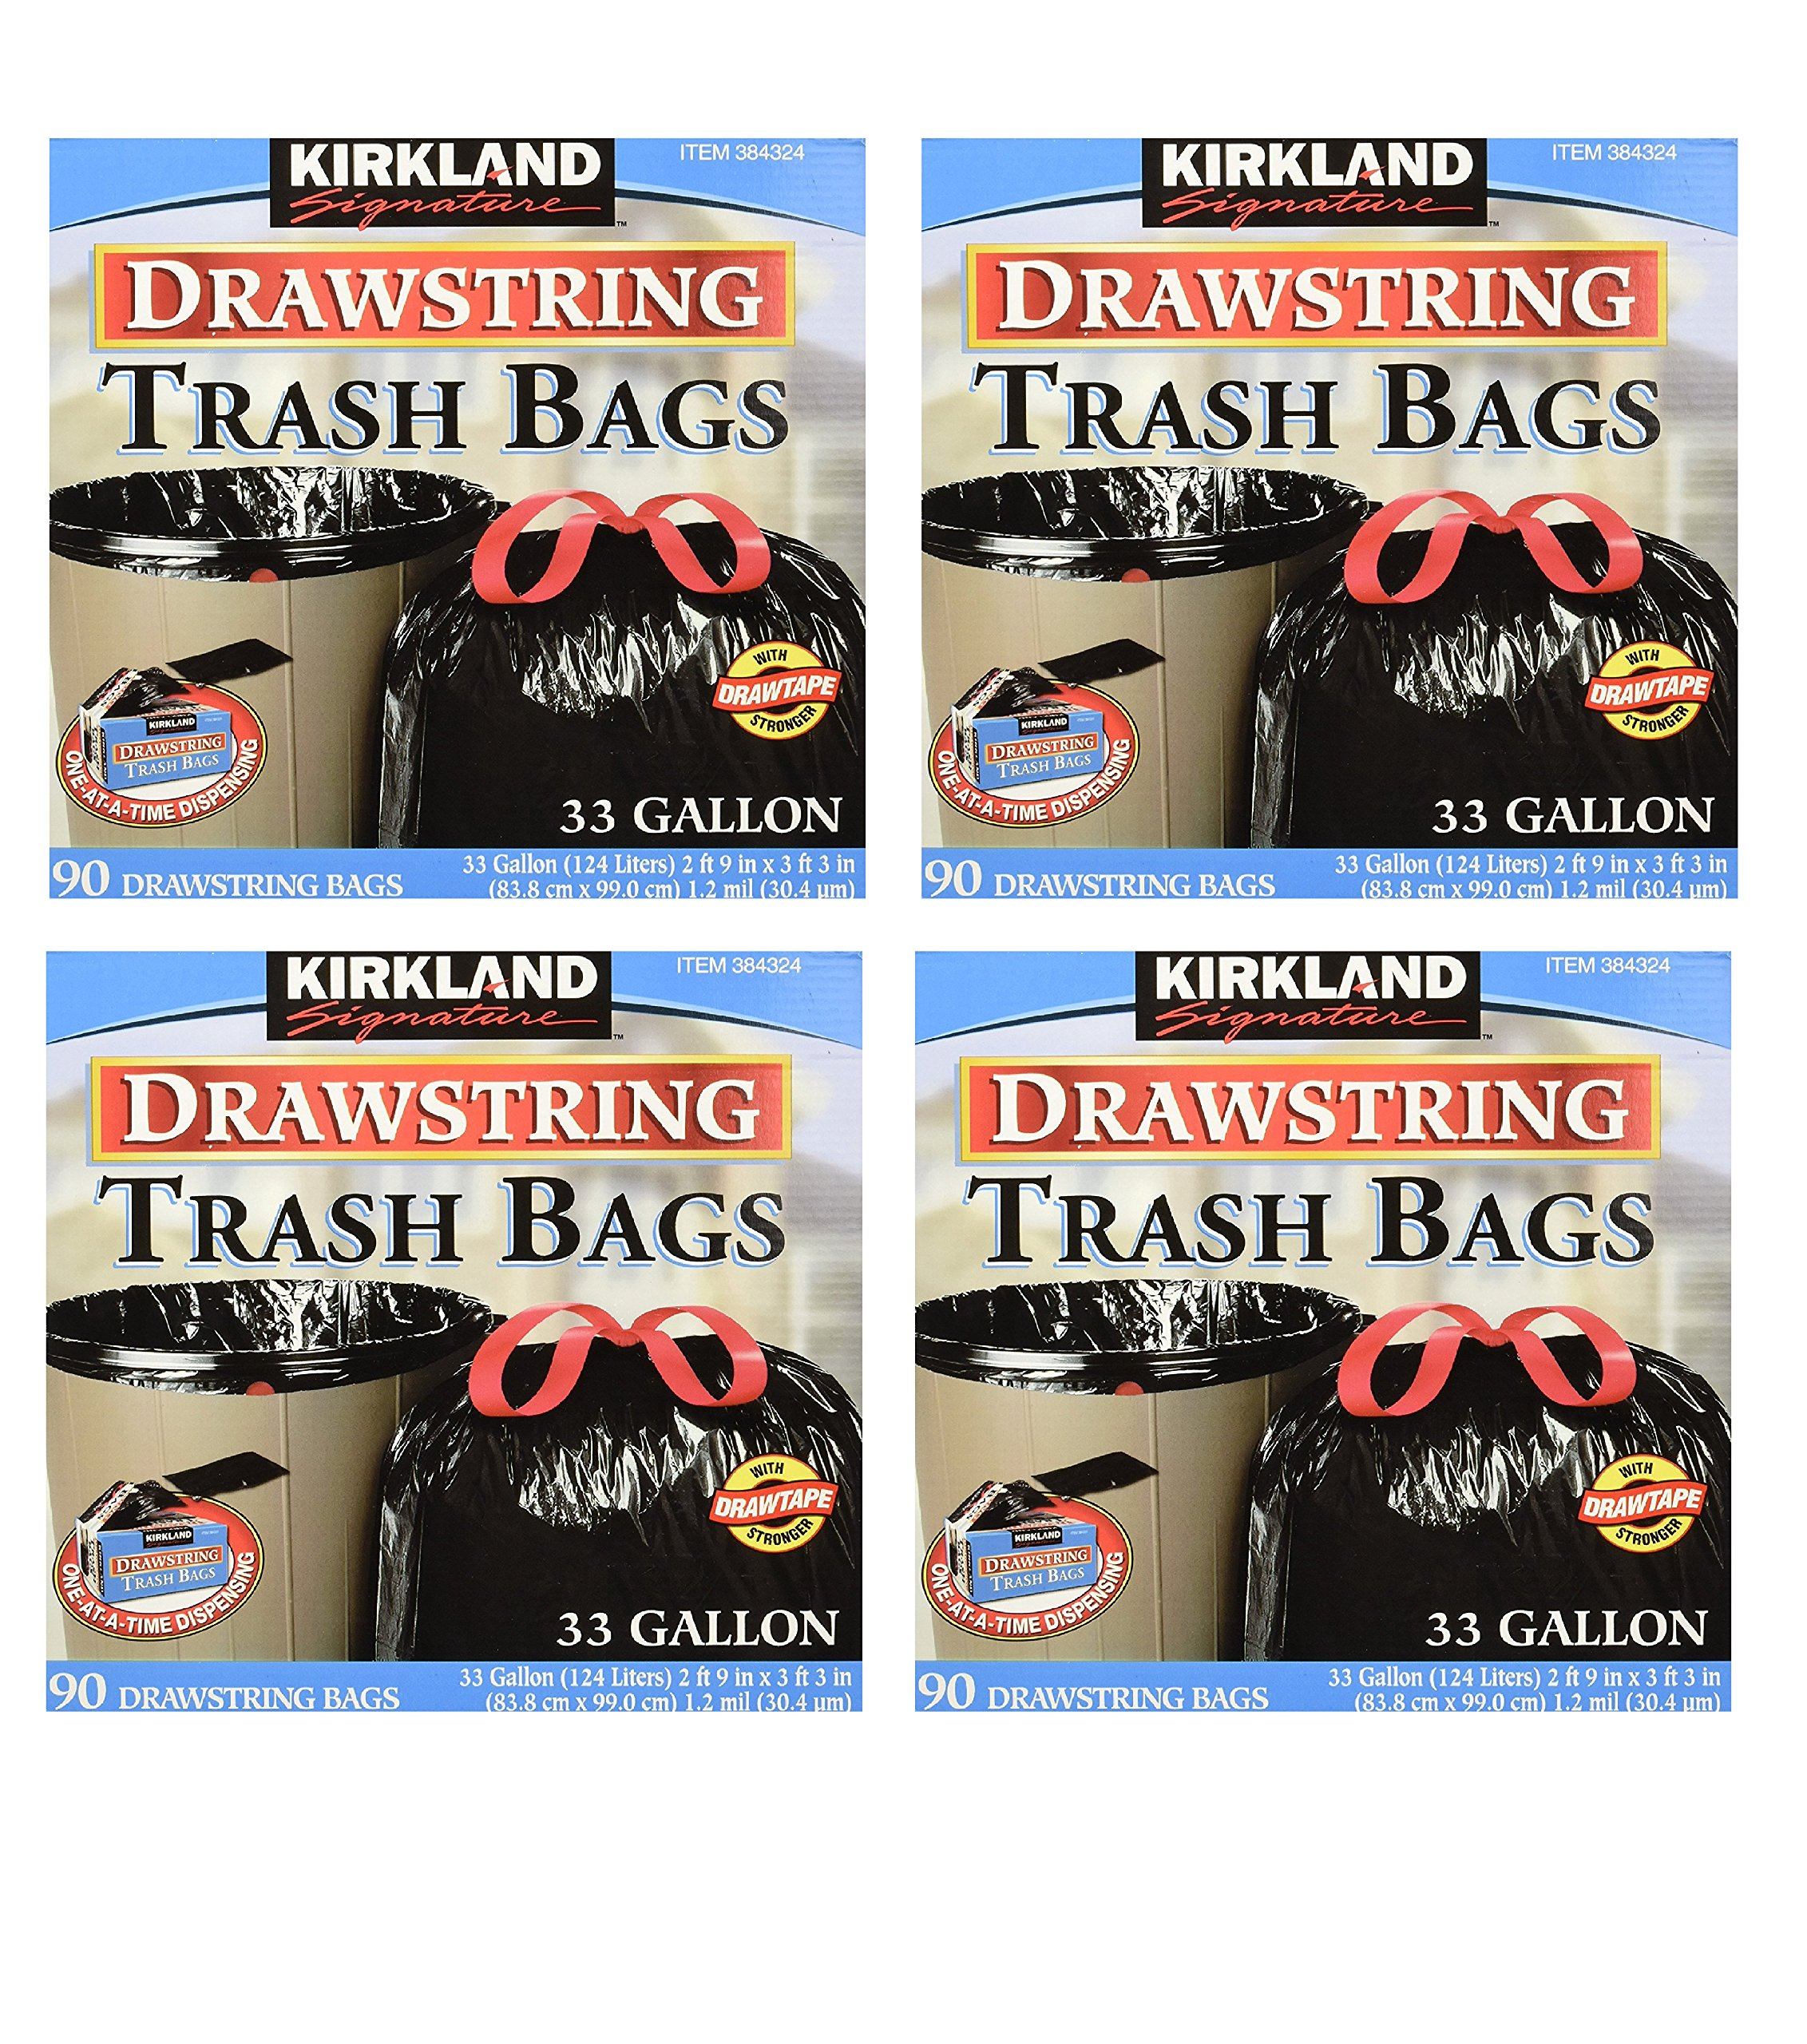 Kirkland Signature Drawstring Trash Bags - 33 Gallon - Xl Size - (90 count) (4 Pack)